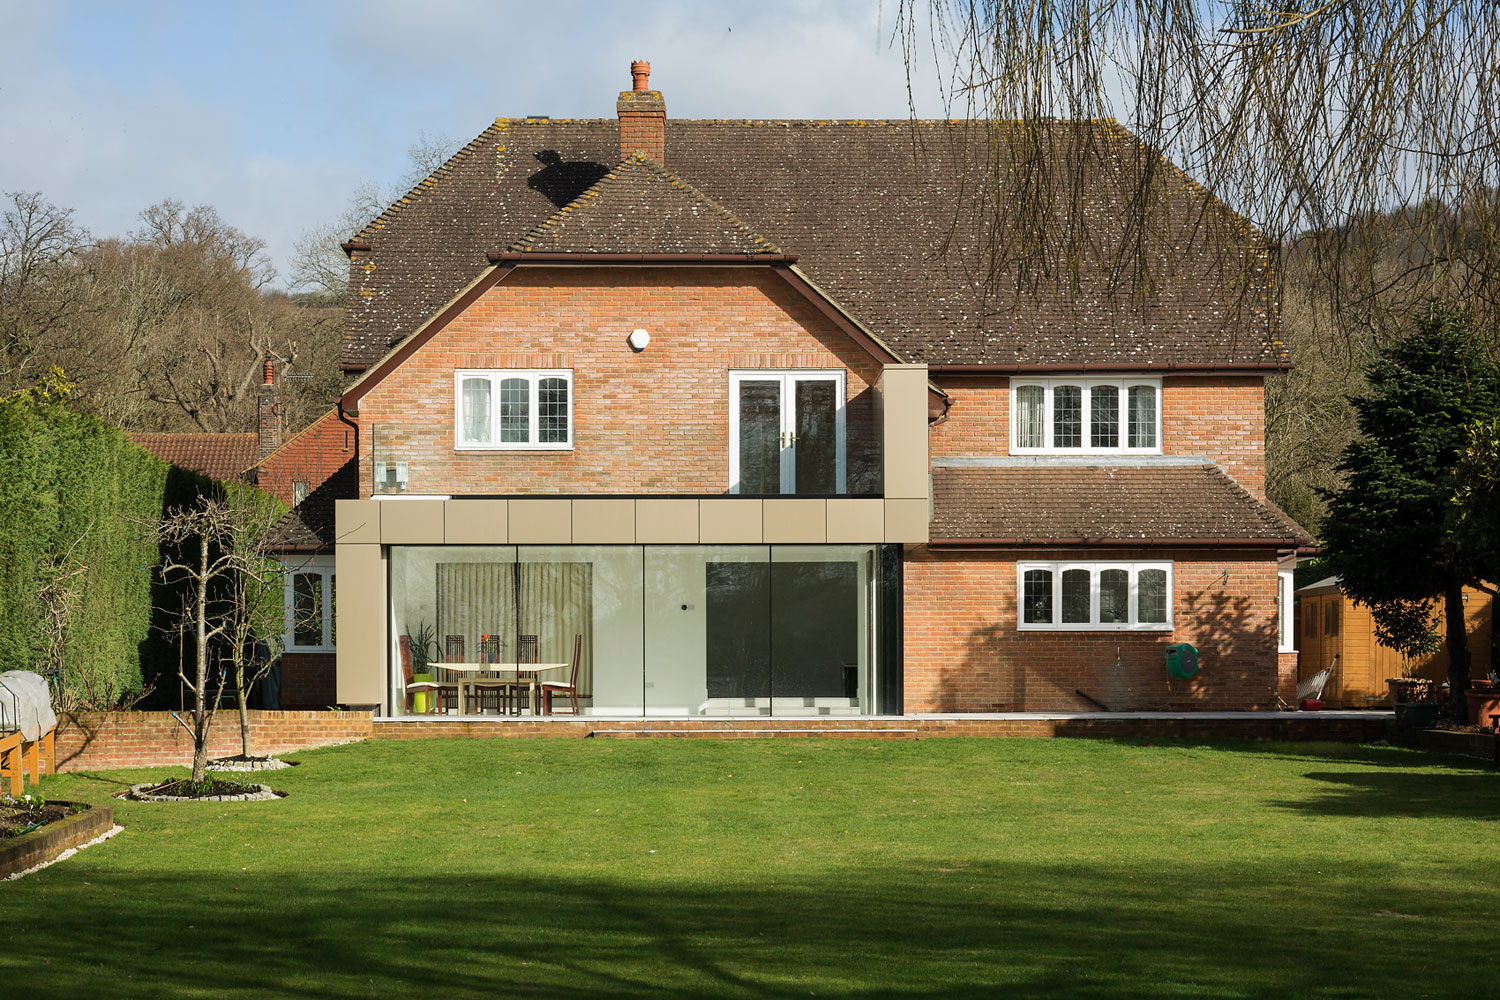 Fabulous Remodeling of a House in England for a Couple in Their Retirement Years